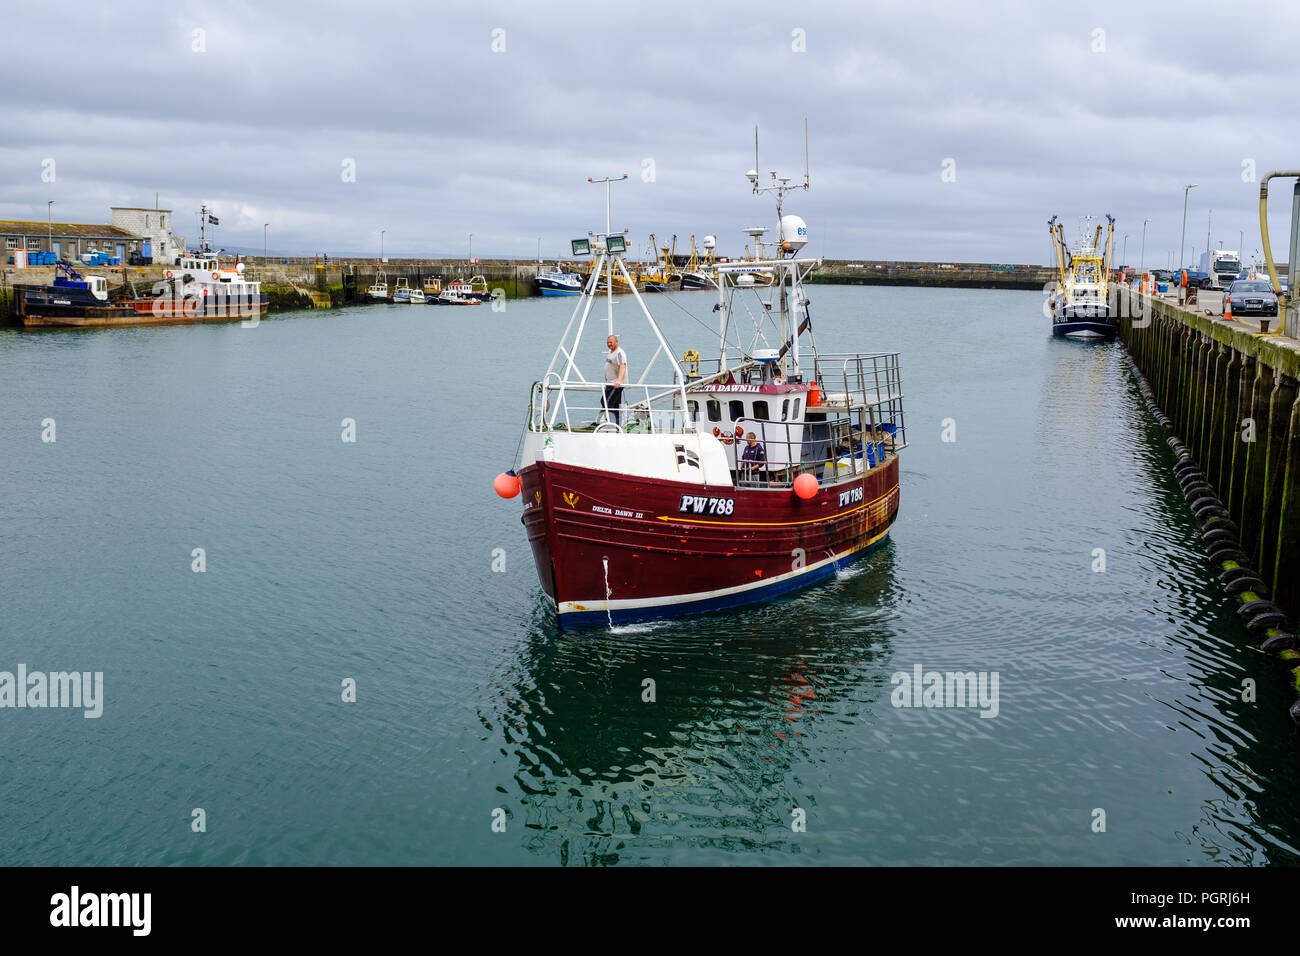 Fishing trawler boat returning to Newlyn harbour. In Newlyn, Cornwall, England. On 20th June 2018. - Stock Image